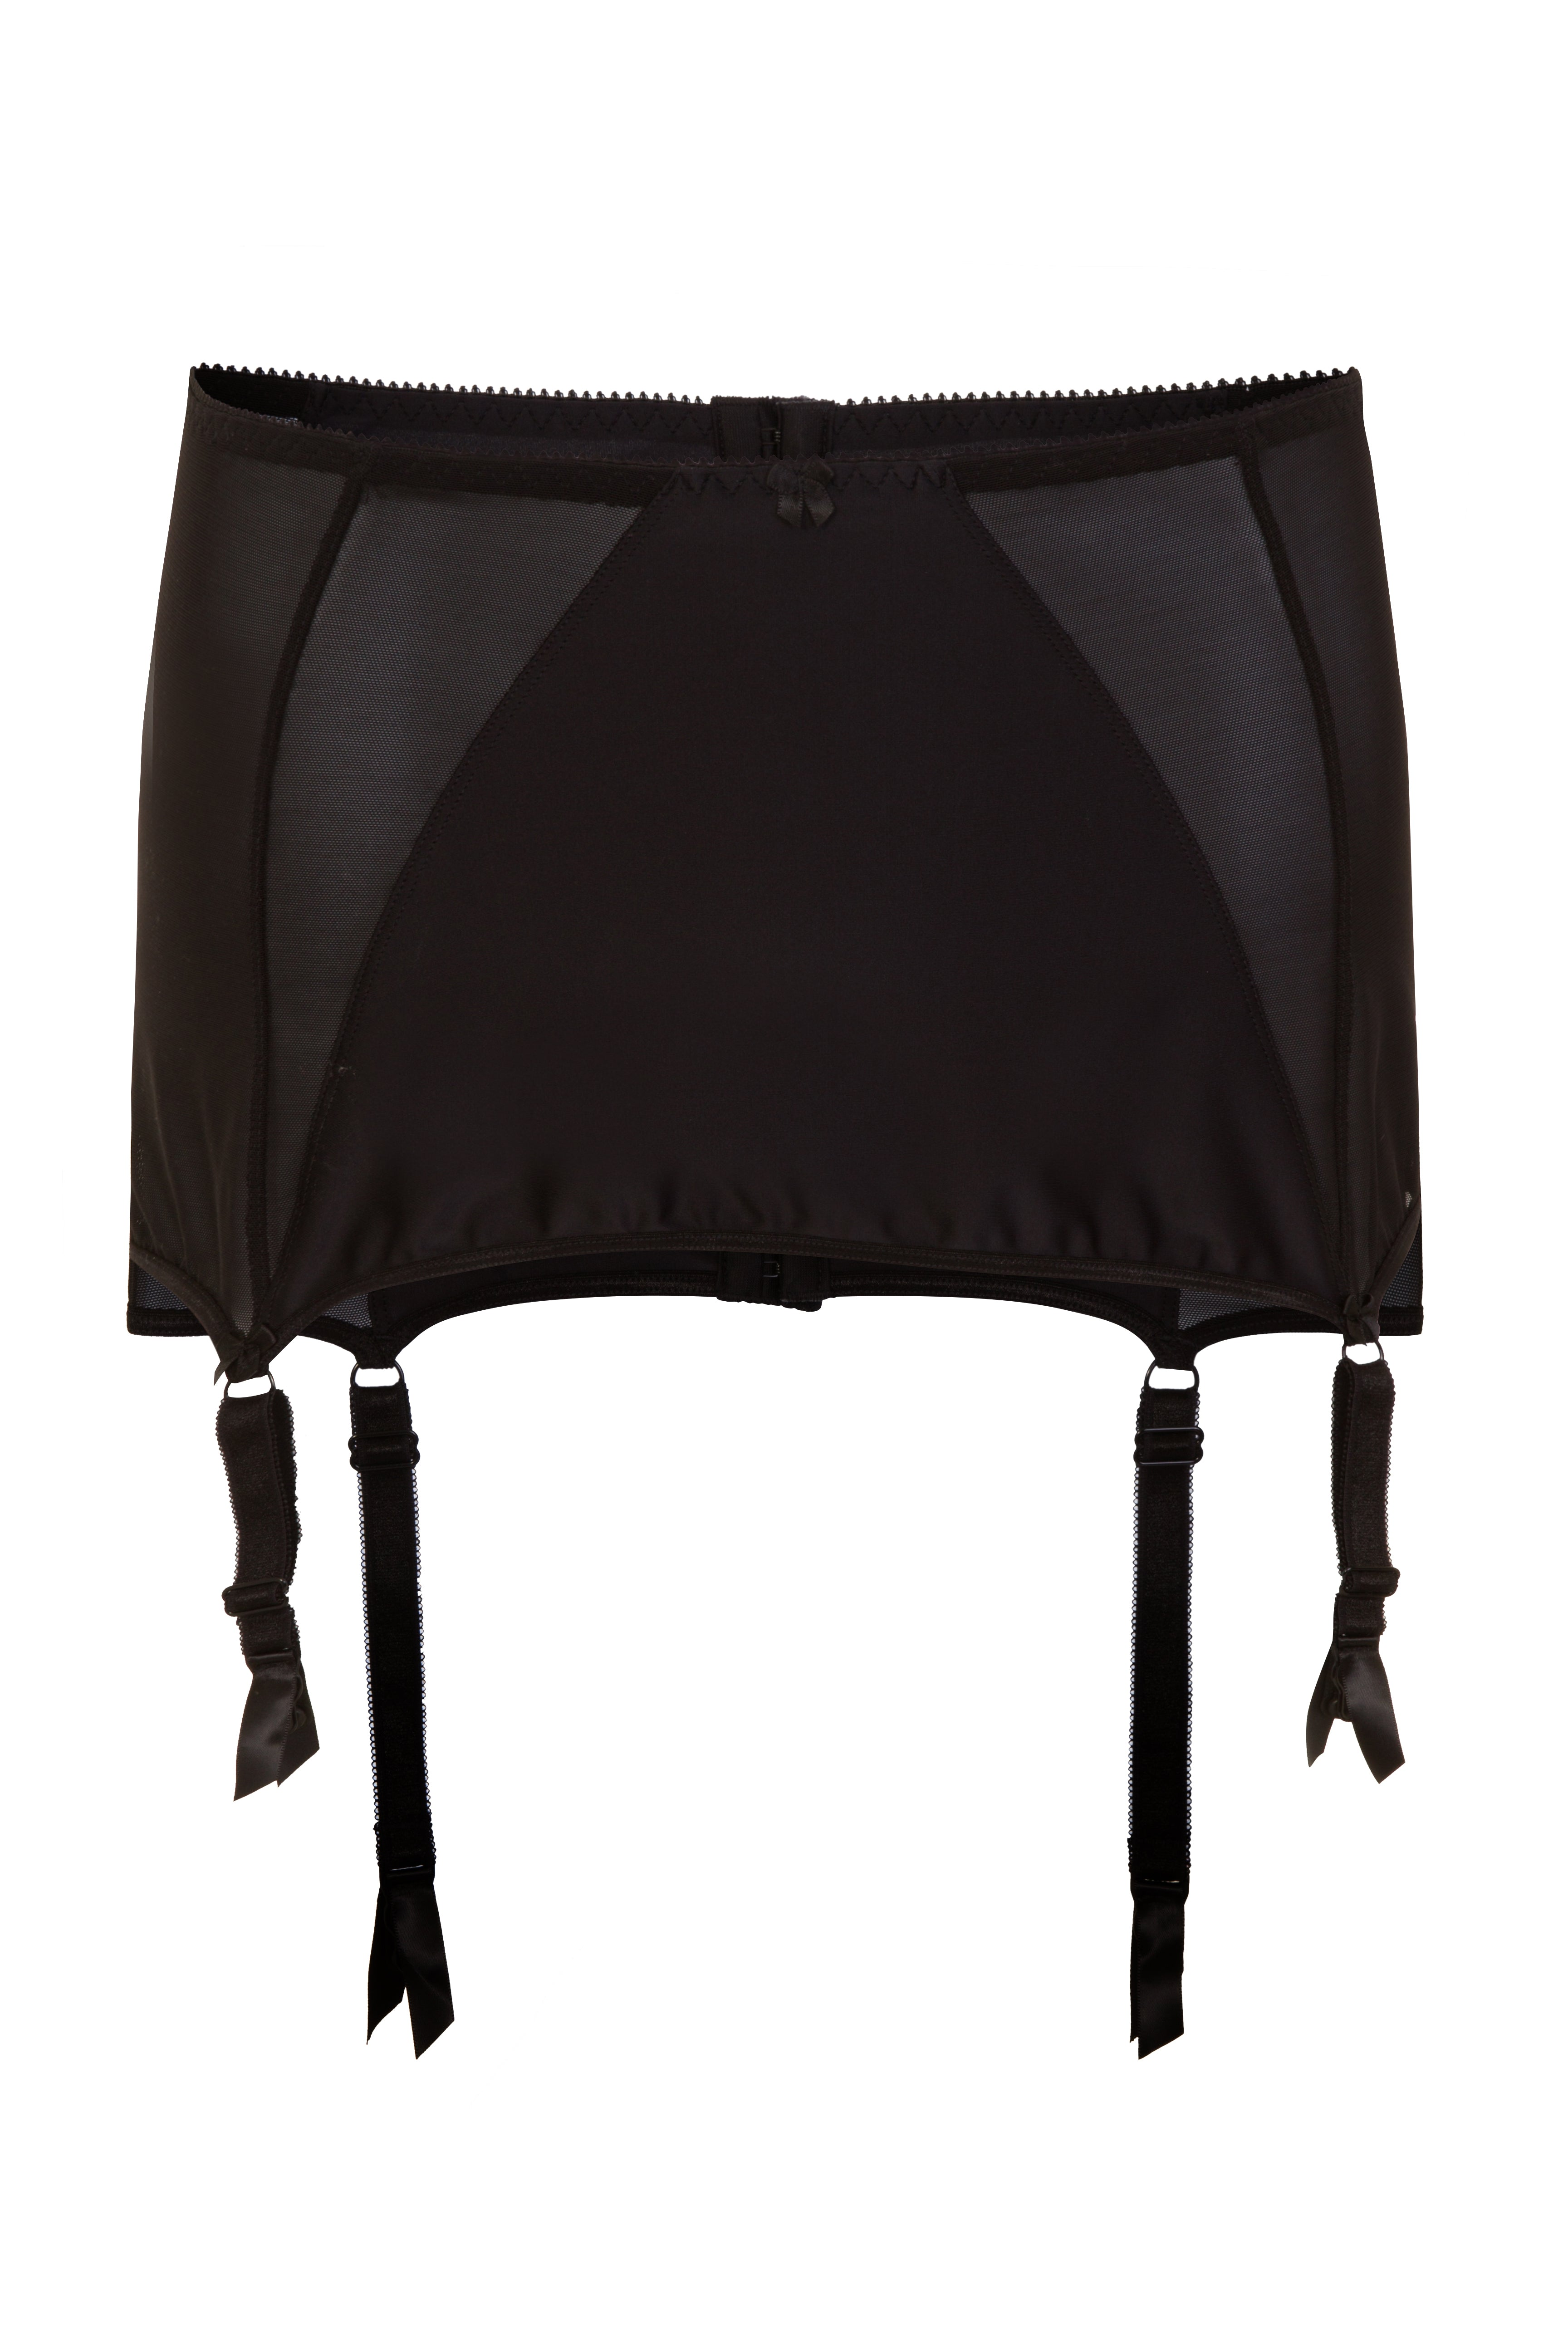 Black Wide Plus Size Suspender Garter belt